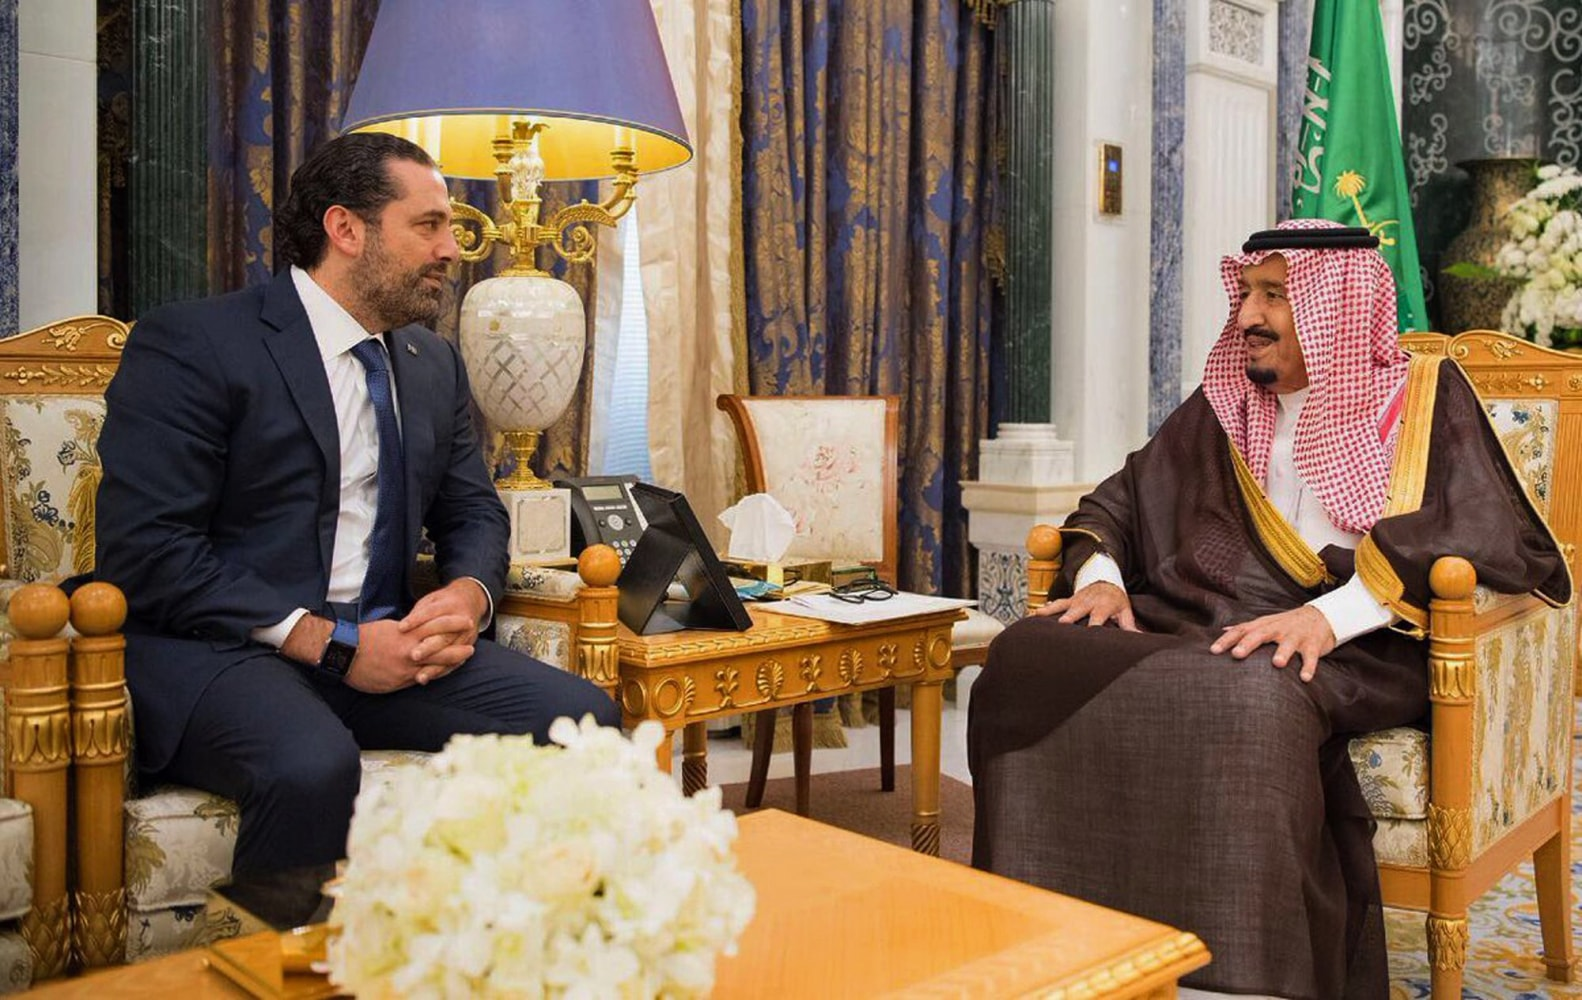 Saudis court Palestinian support for grand alliance with Israel — Abbas in Riyadh